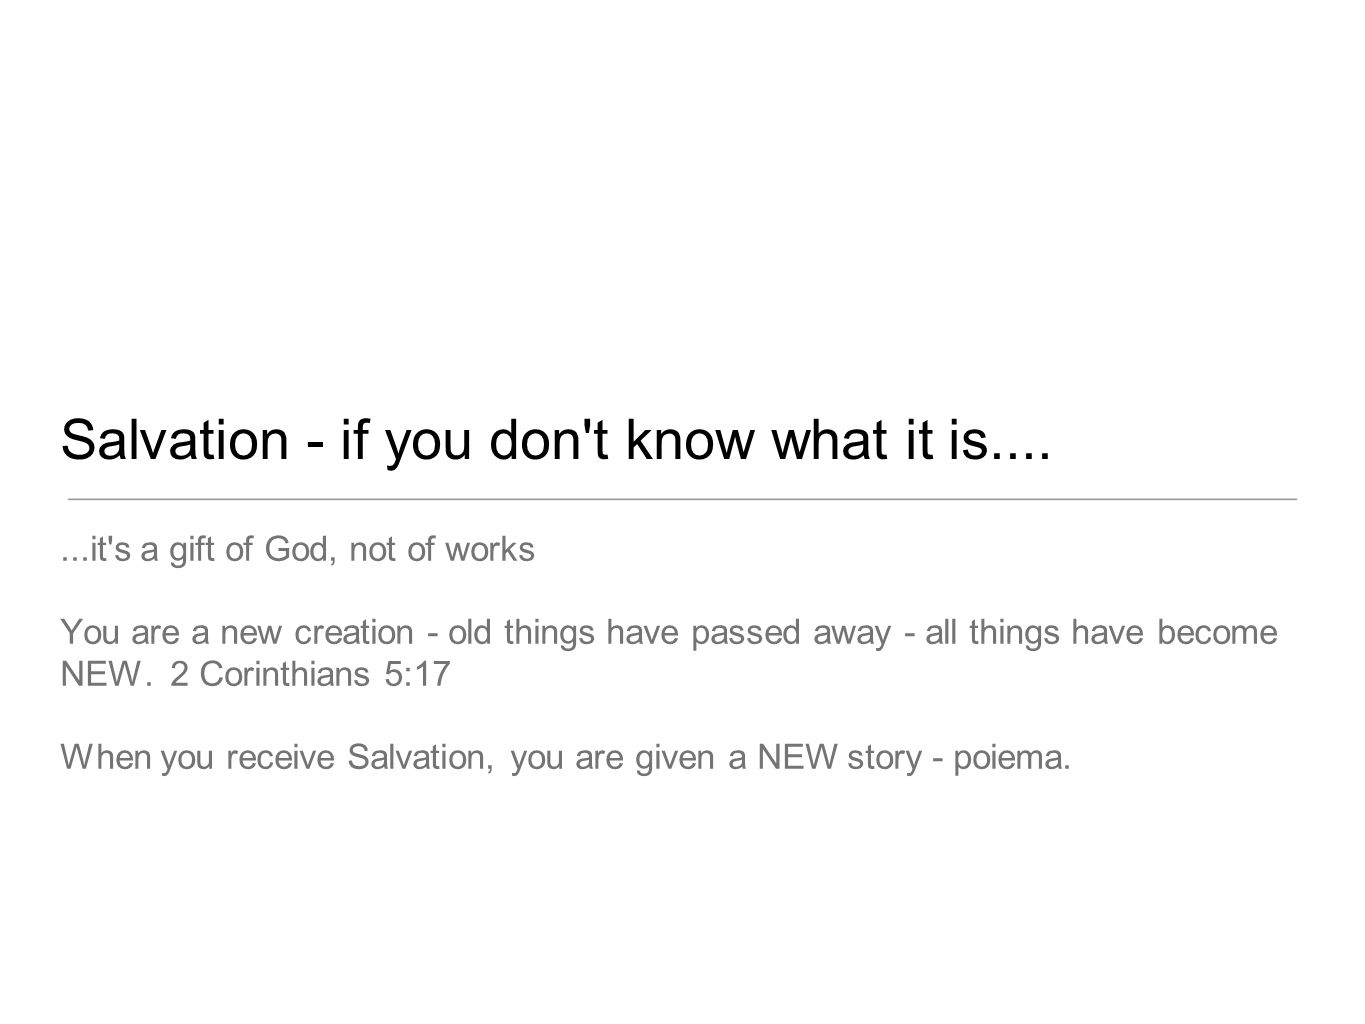 Salvation - if you don't know what it is.......it's a gift of God, not of works You are a new creation - old things have passed away - all things have